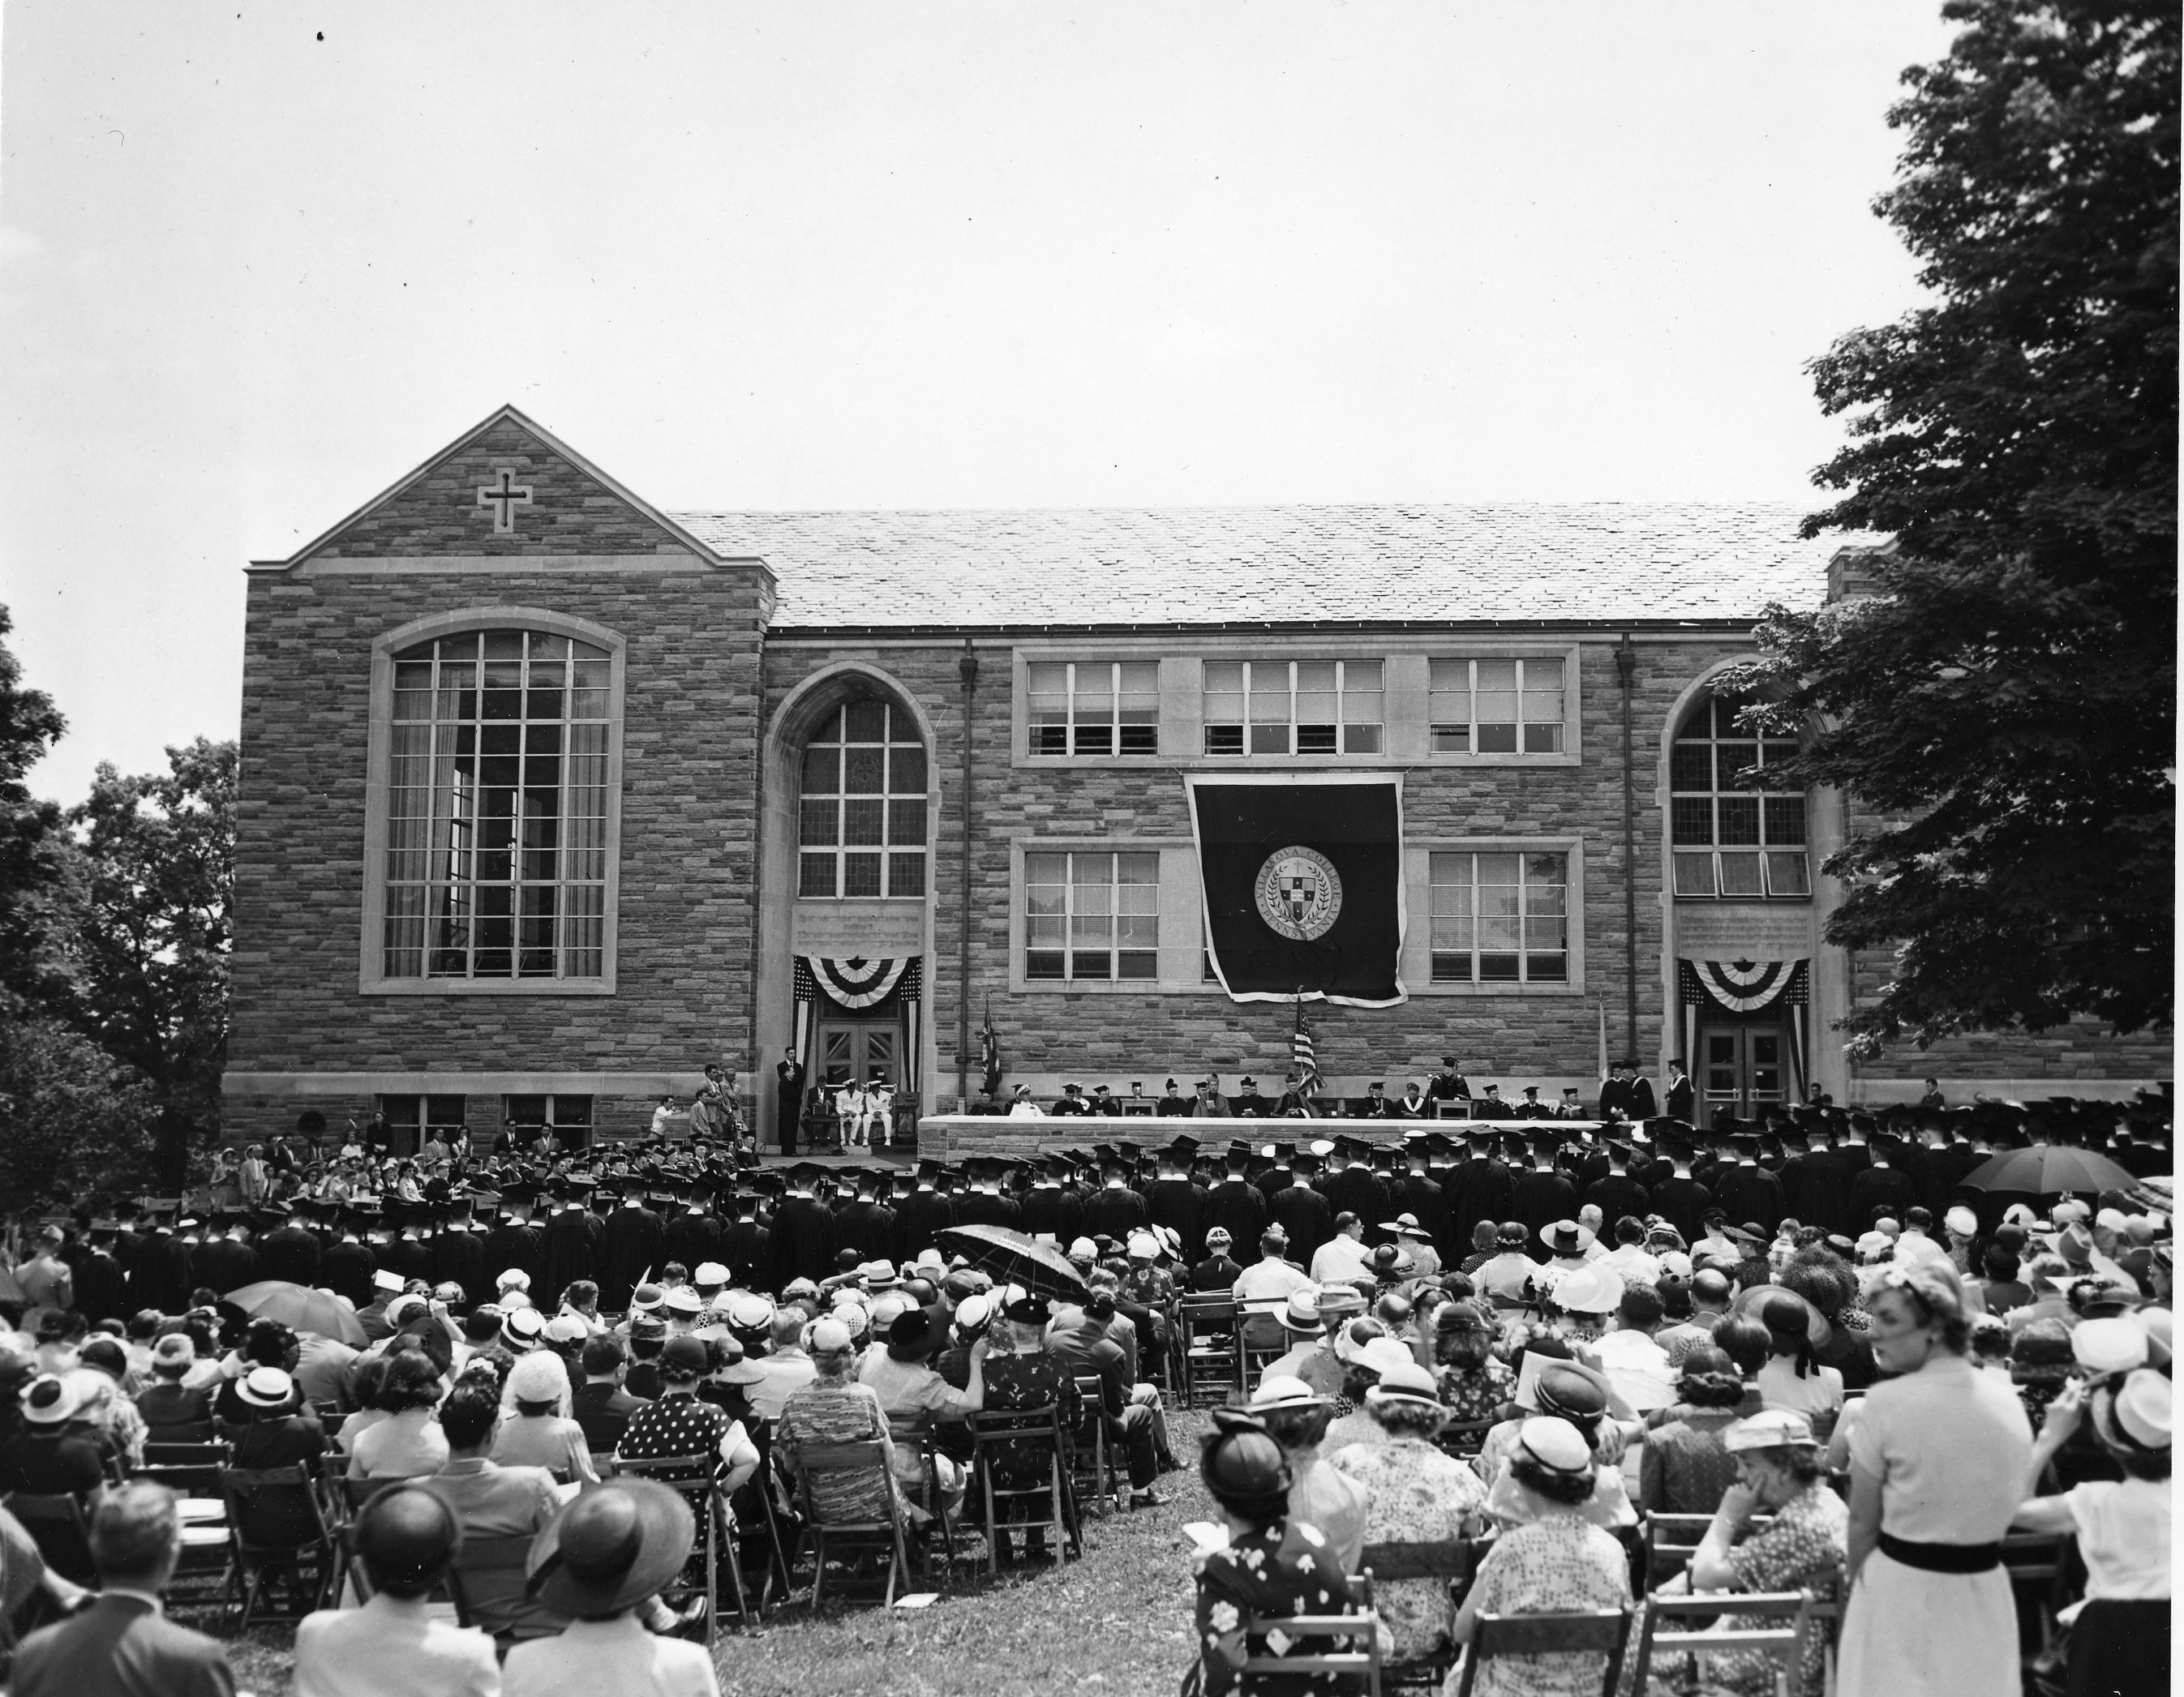 1951, 1951 commencement, mendel field, villanova. alumni reunion weekend